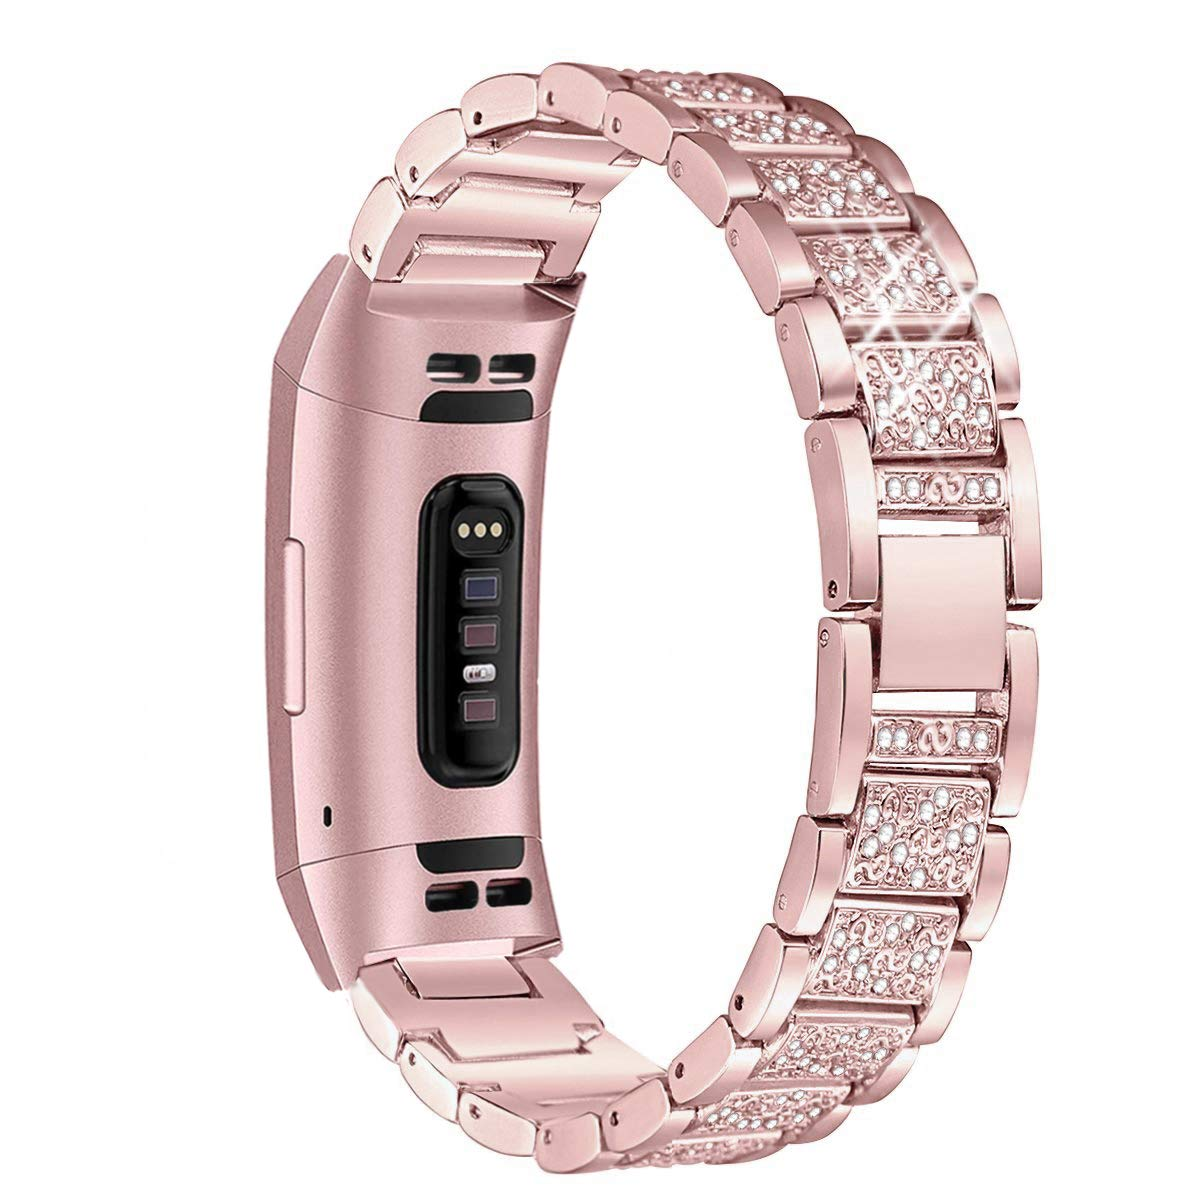 Mtozon Metal Bands Compatible Fitbit Charge 3, Replacement Metal Rhinestone Bling Bracelet Wristband for Women, Rose Gold